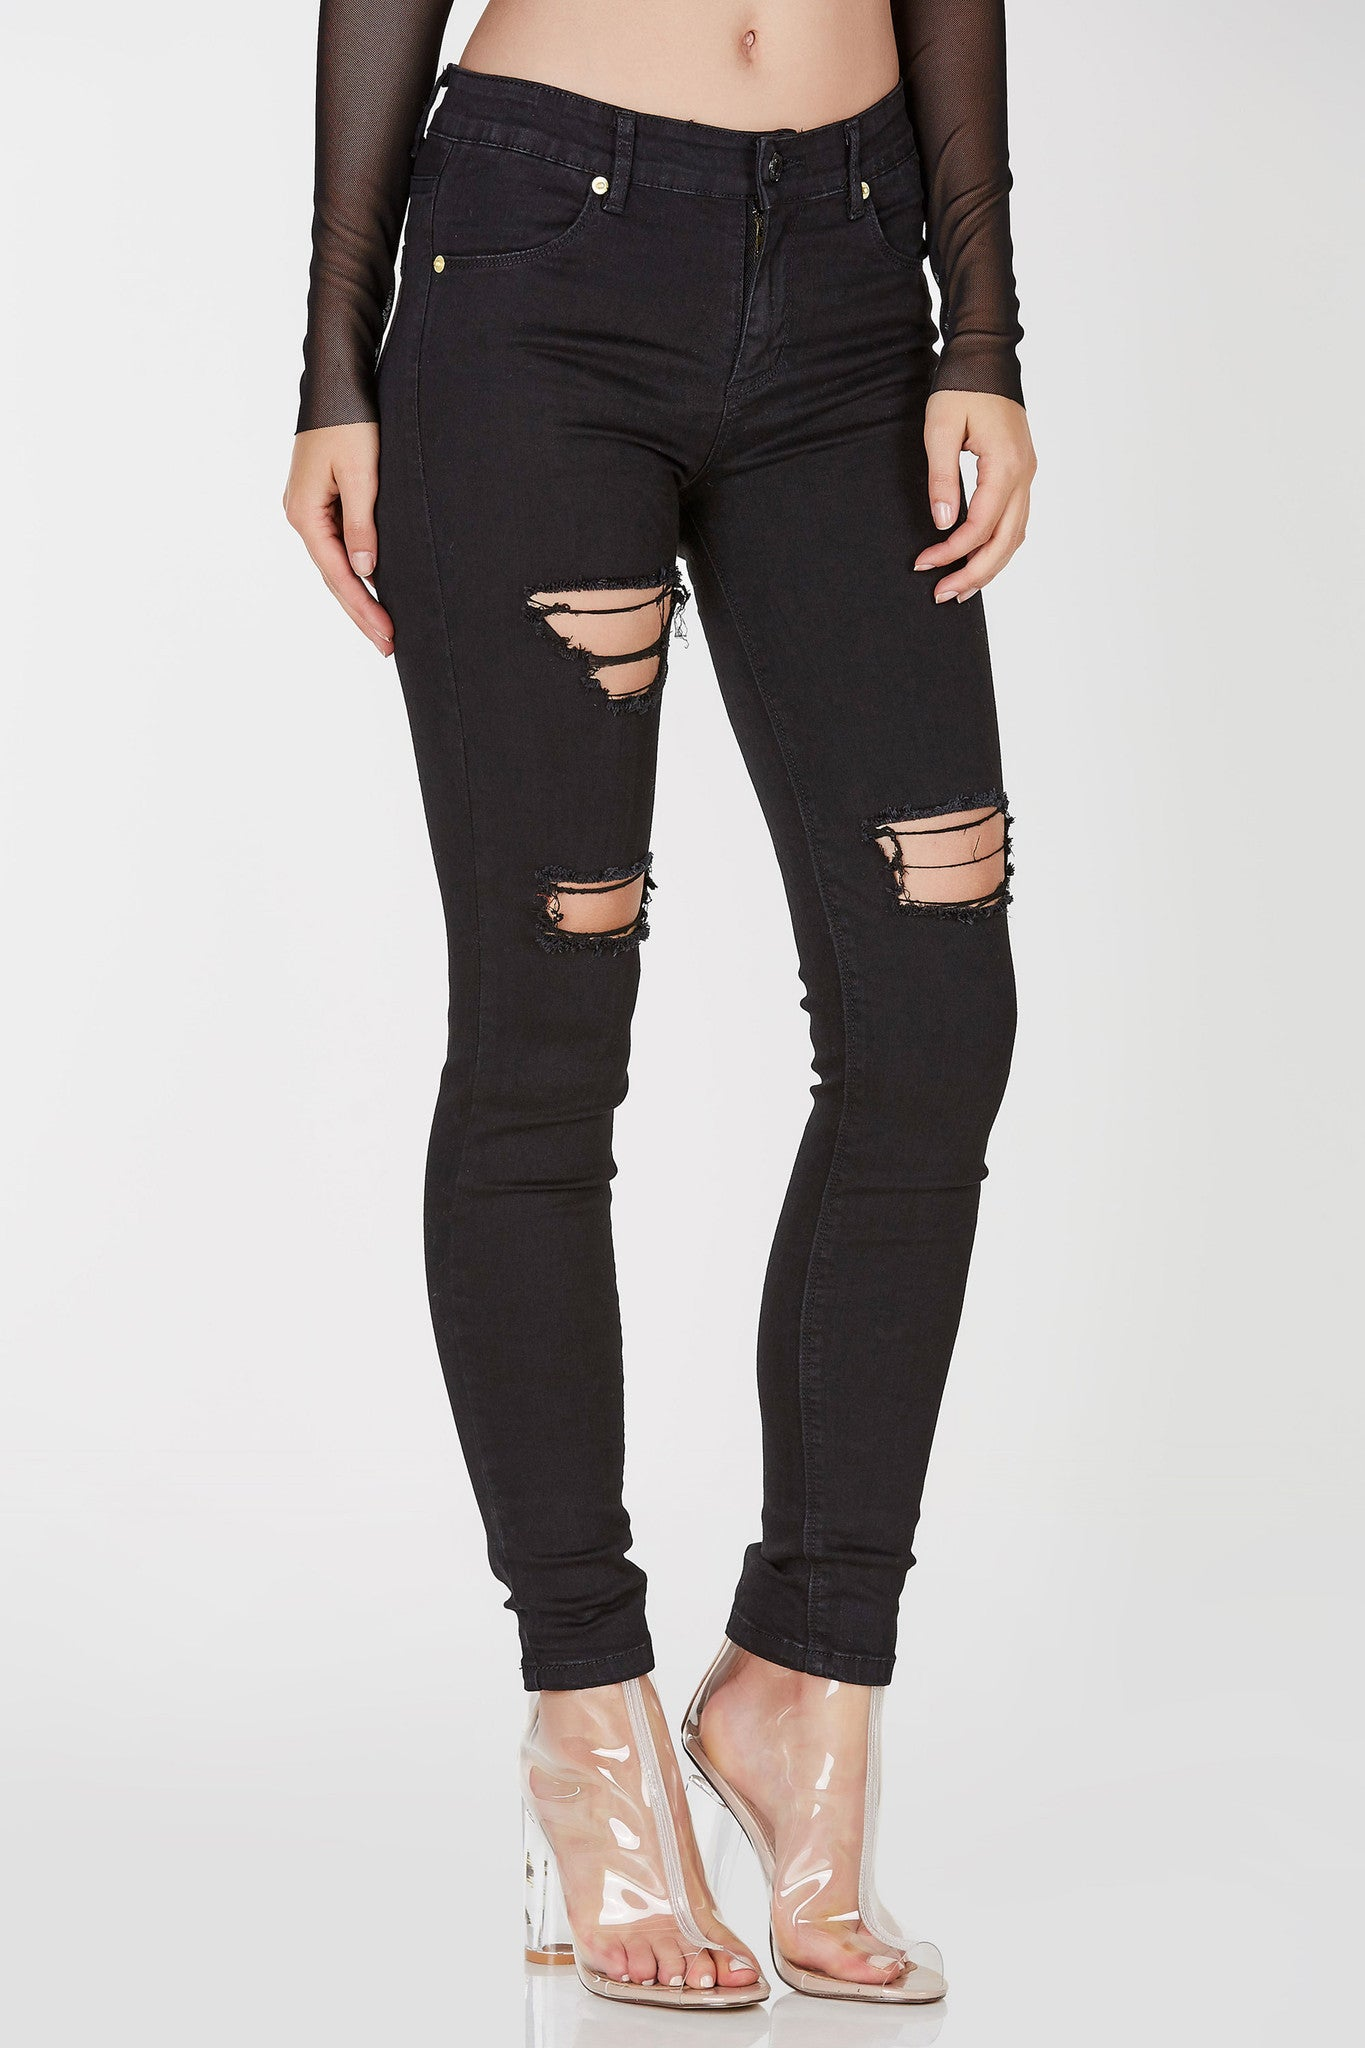 Stretchy skinny jeans with high rise waist. Distressed in front with four functional pockets.